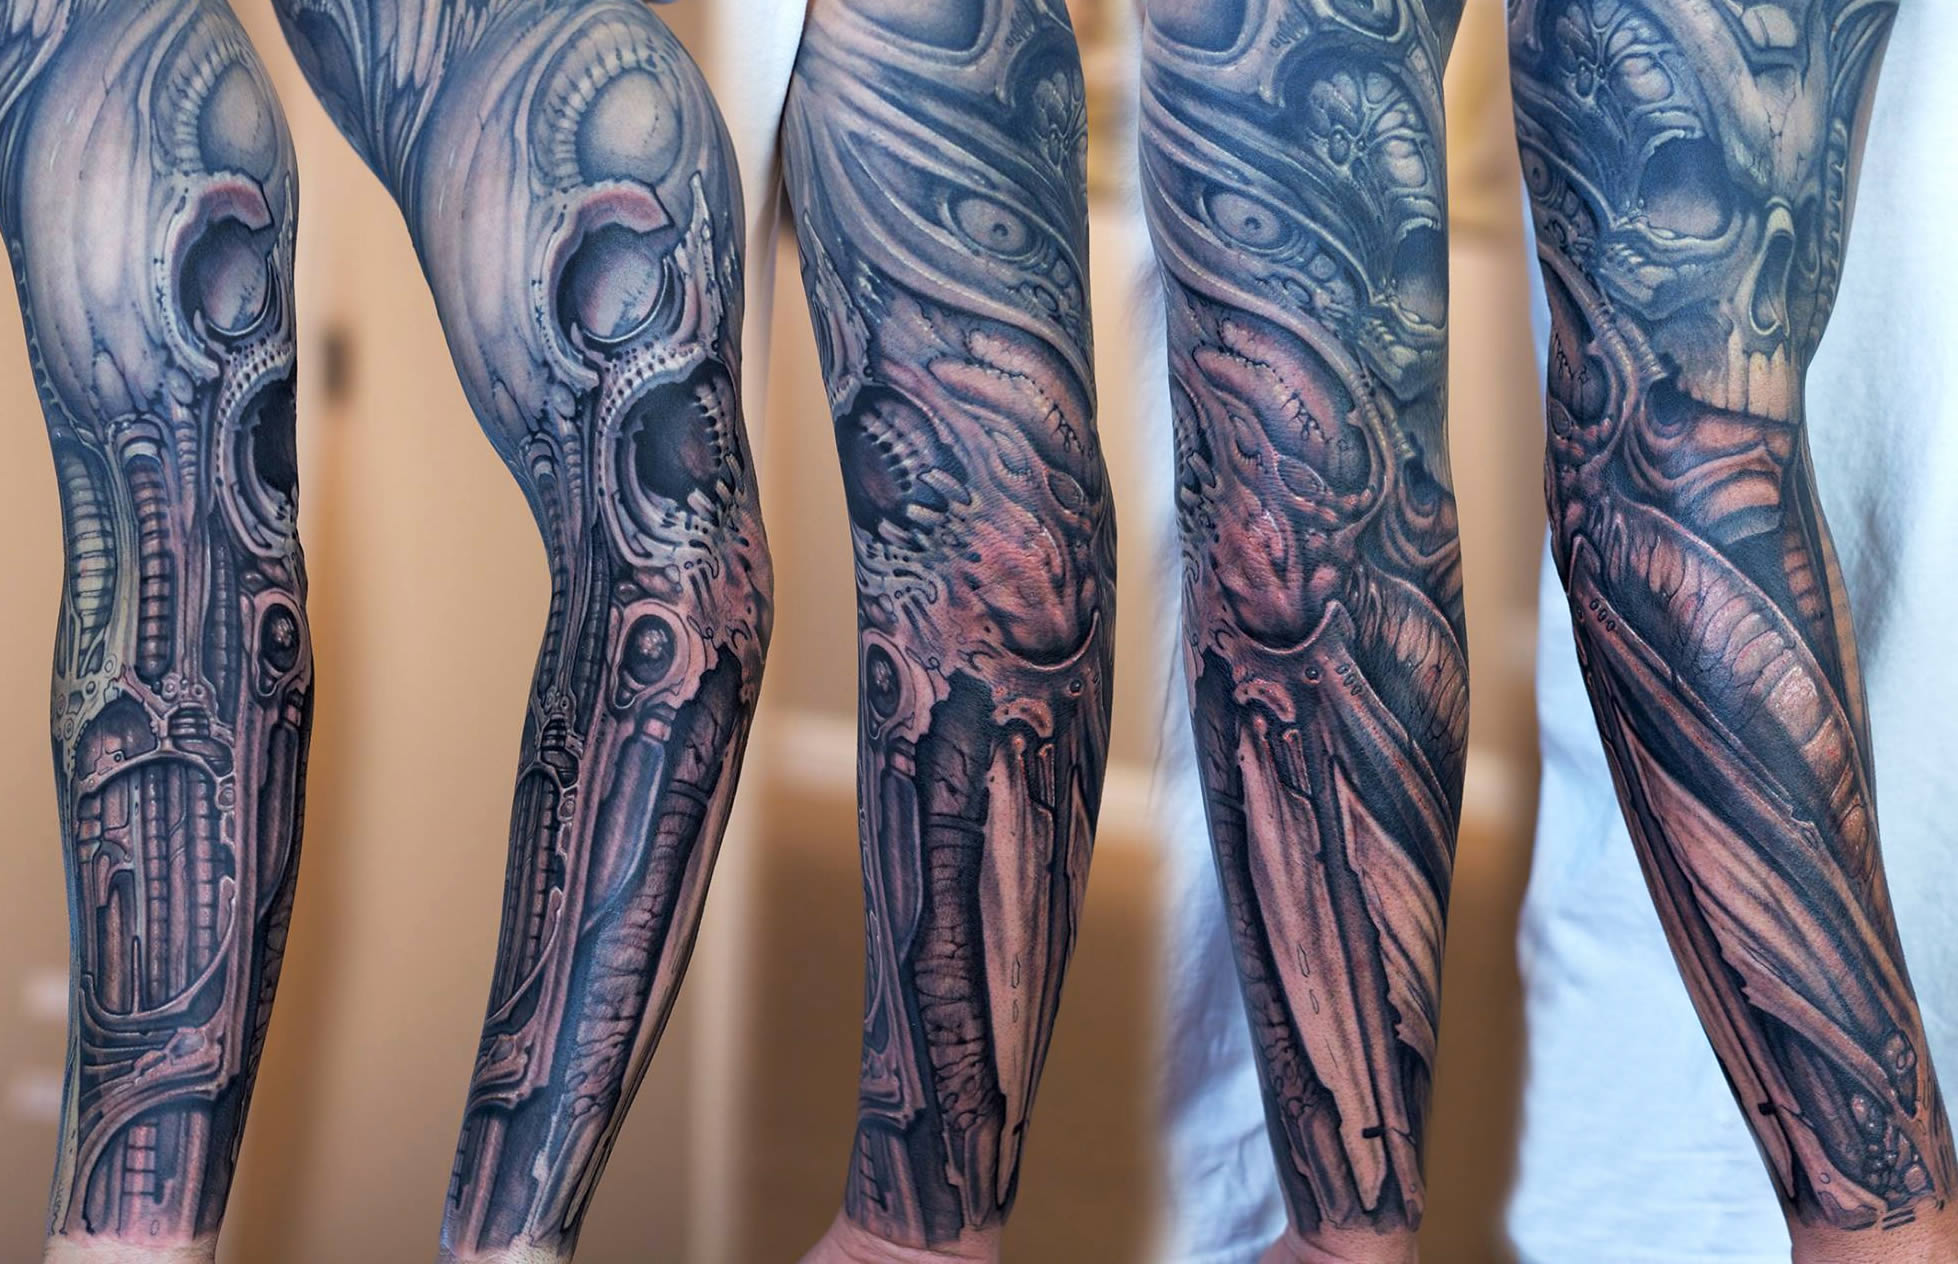 Biomech tattoo, skull, giger style, by paco dietz